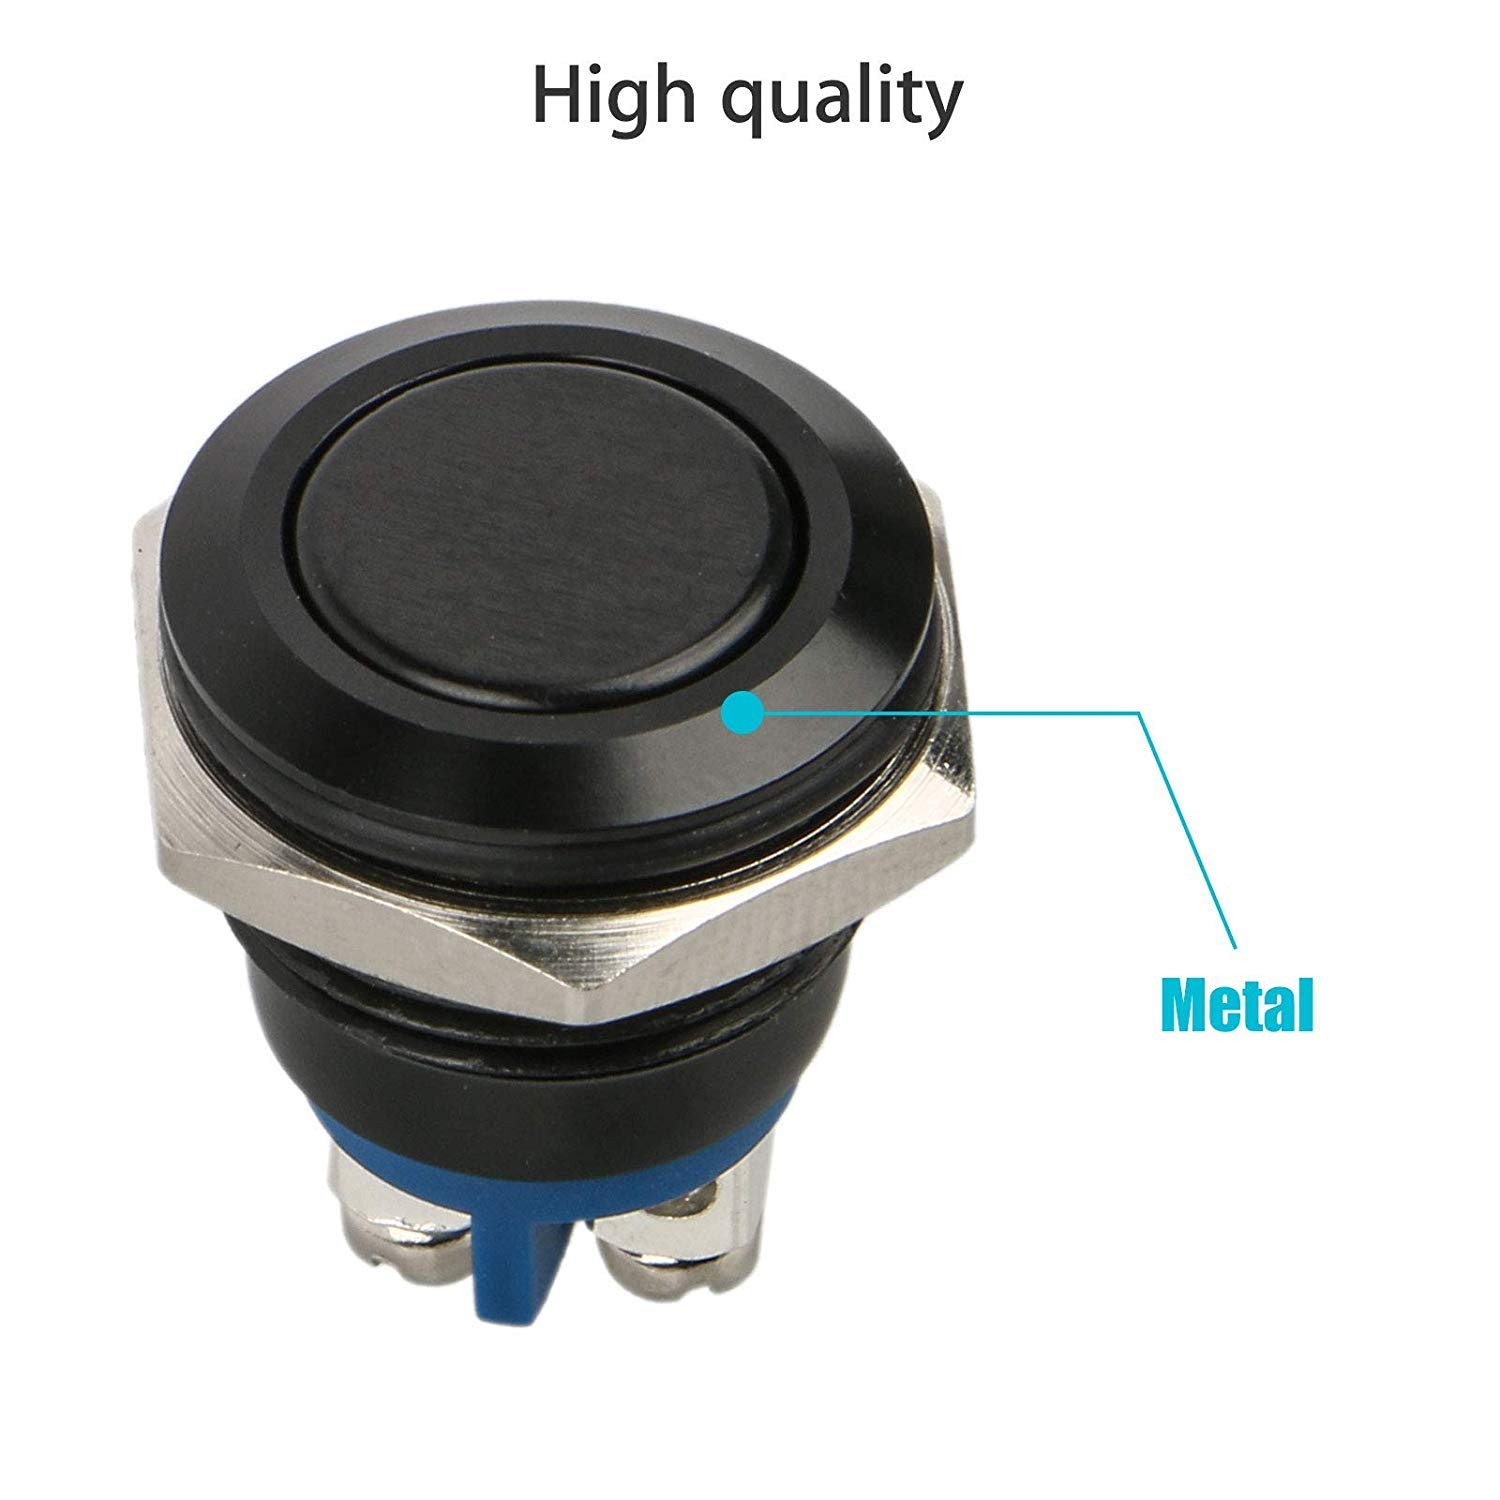 4 Pin Car RV Truck Boat SPDT ON//OFF Switch EEEKit 5Pcs DC 12V//24V Metal Latching Push Button Switch Waterproof Self-Locking Round Marine Switch with Blue LED Light for 12mm 1//2 Mounting Hole